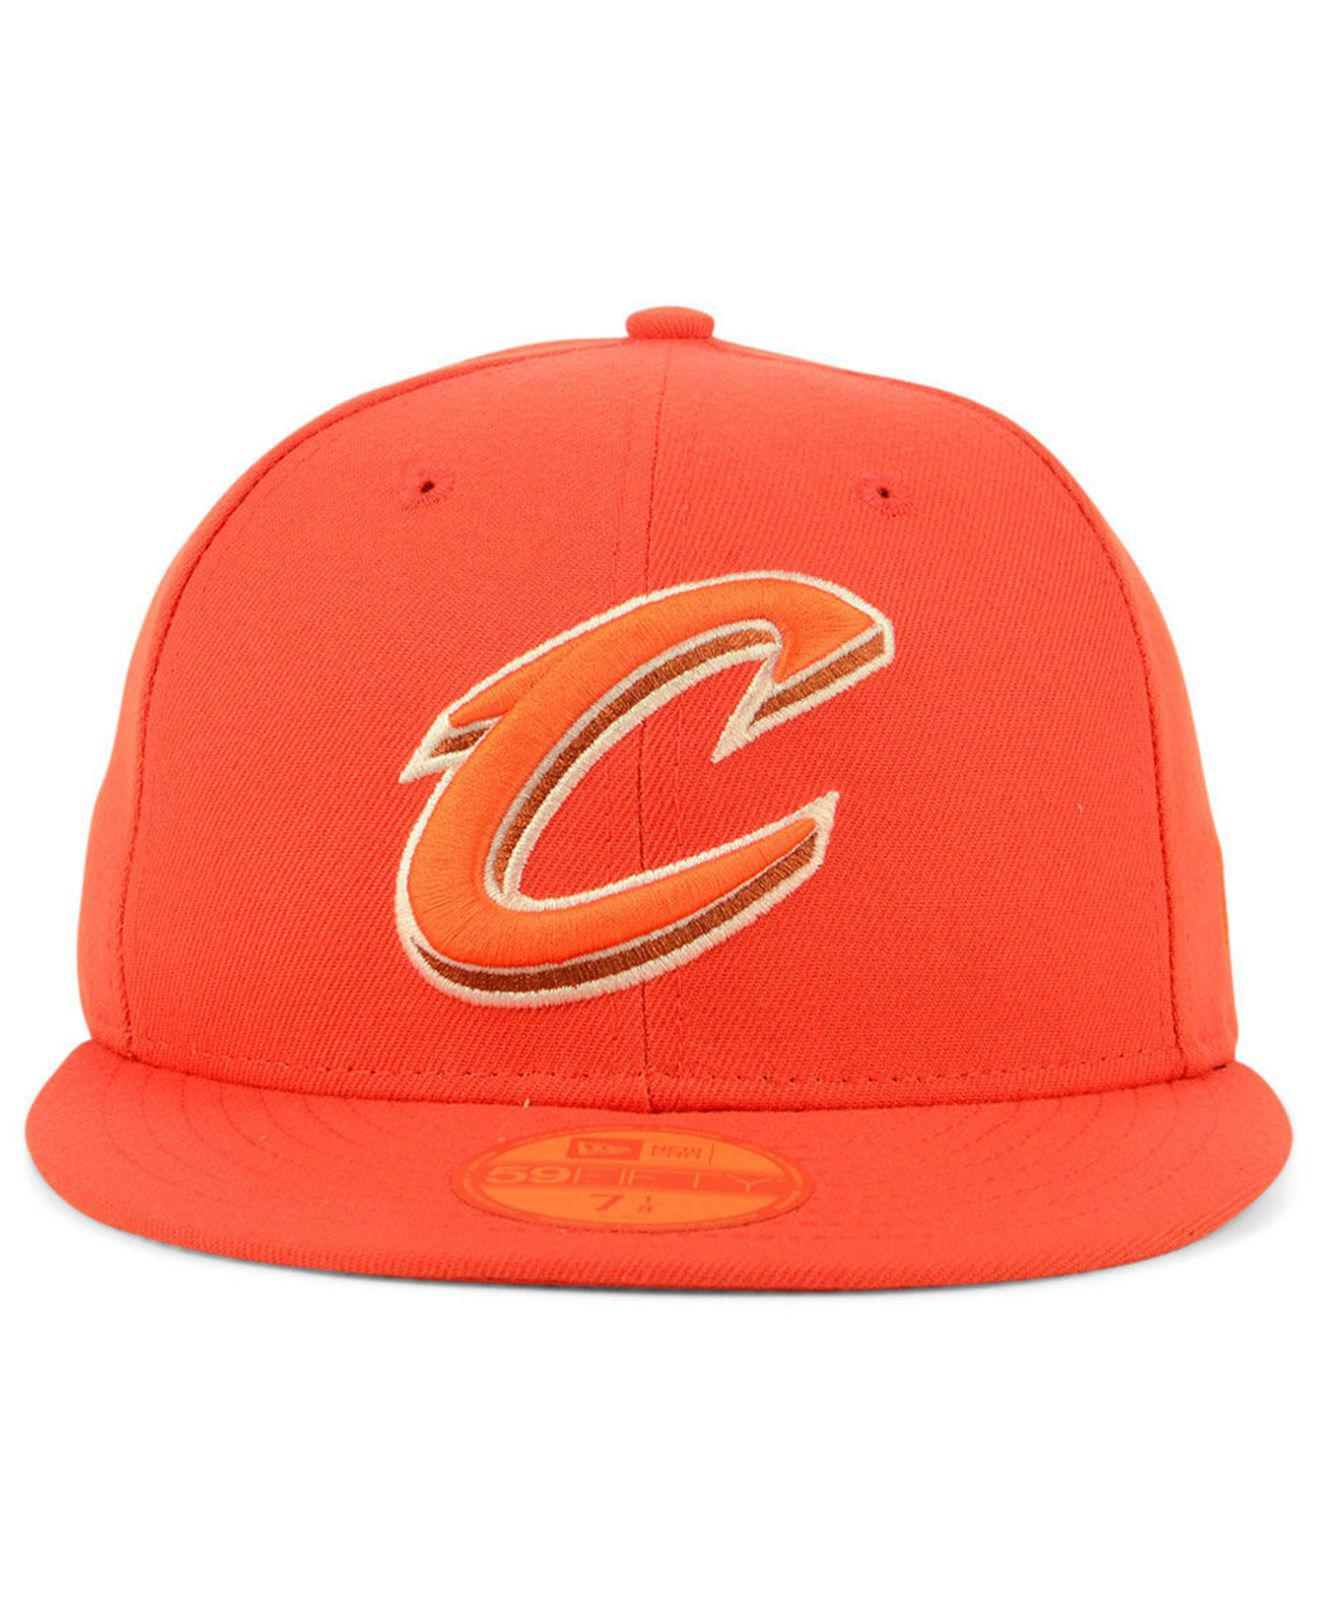 big sale f8d6e 23a59 Lyst - KTZ Cleveland Cavaliers Color Prism Pack 59fifty Fitted Cap in  Orange for Men